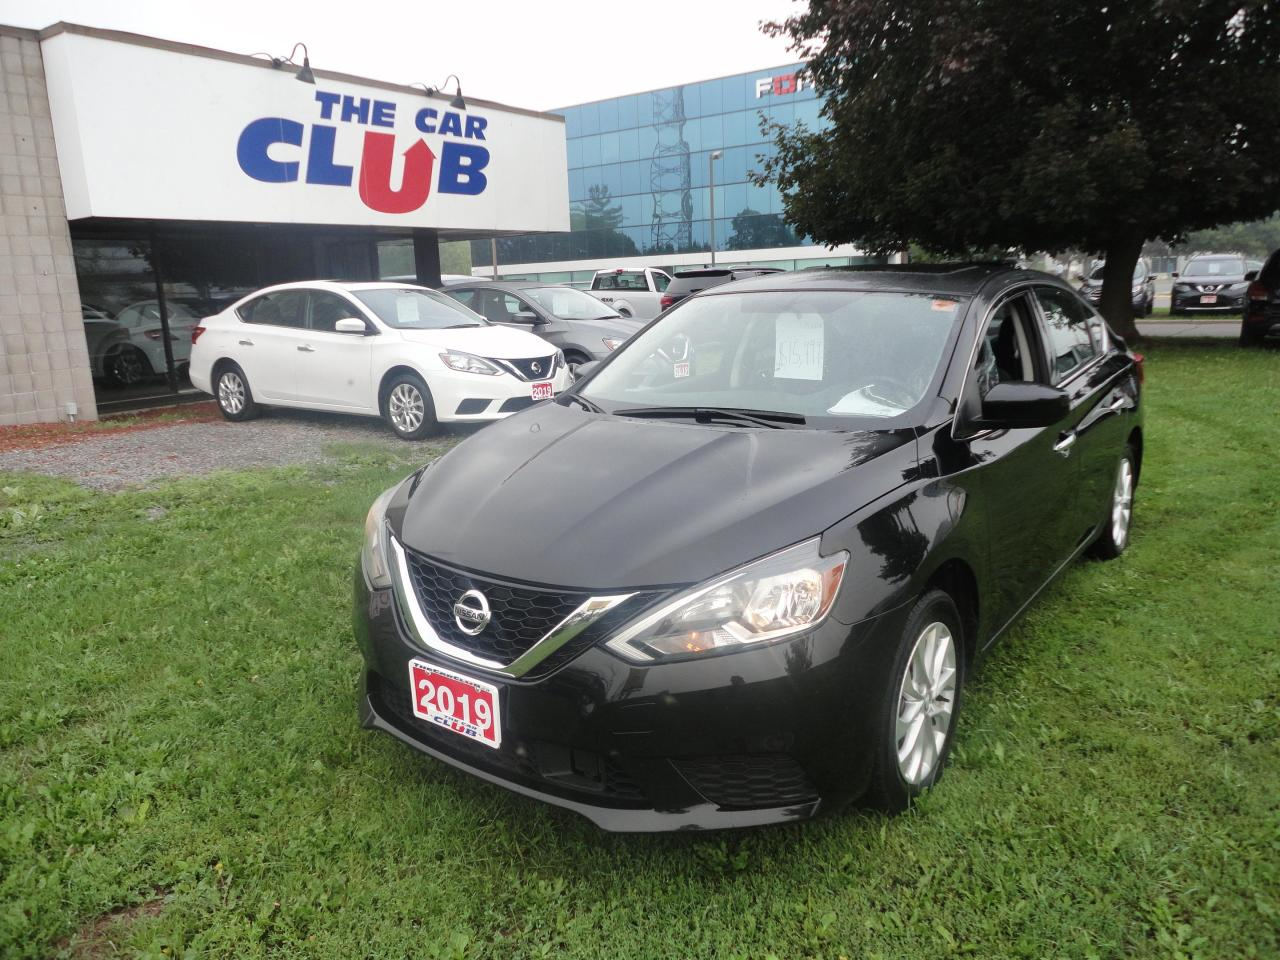 used 2019 nissan sentra sv w sunroof for sale in ottawa, ontario carpages.ca